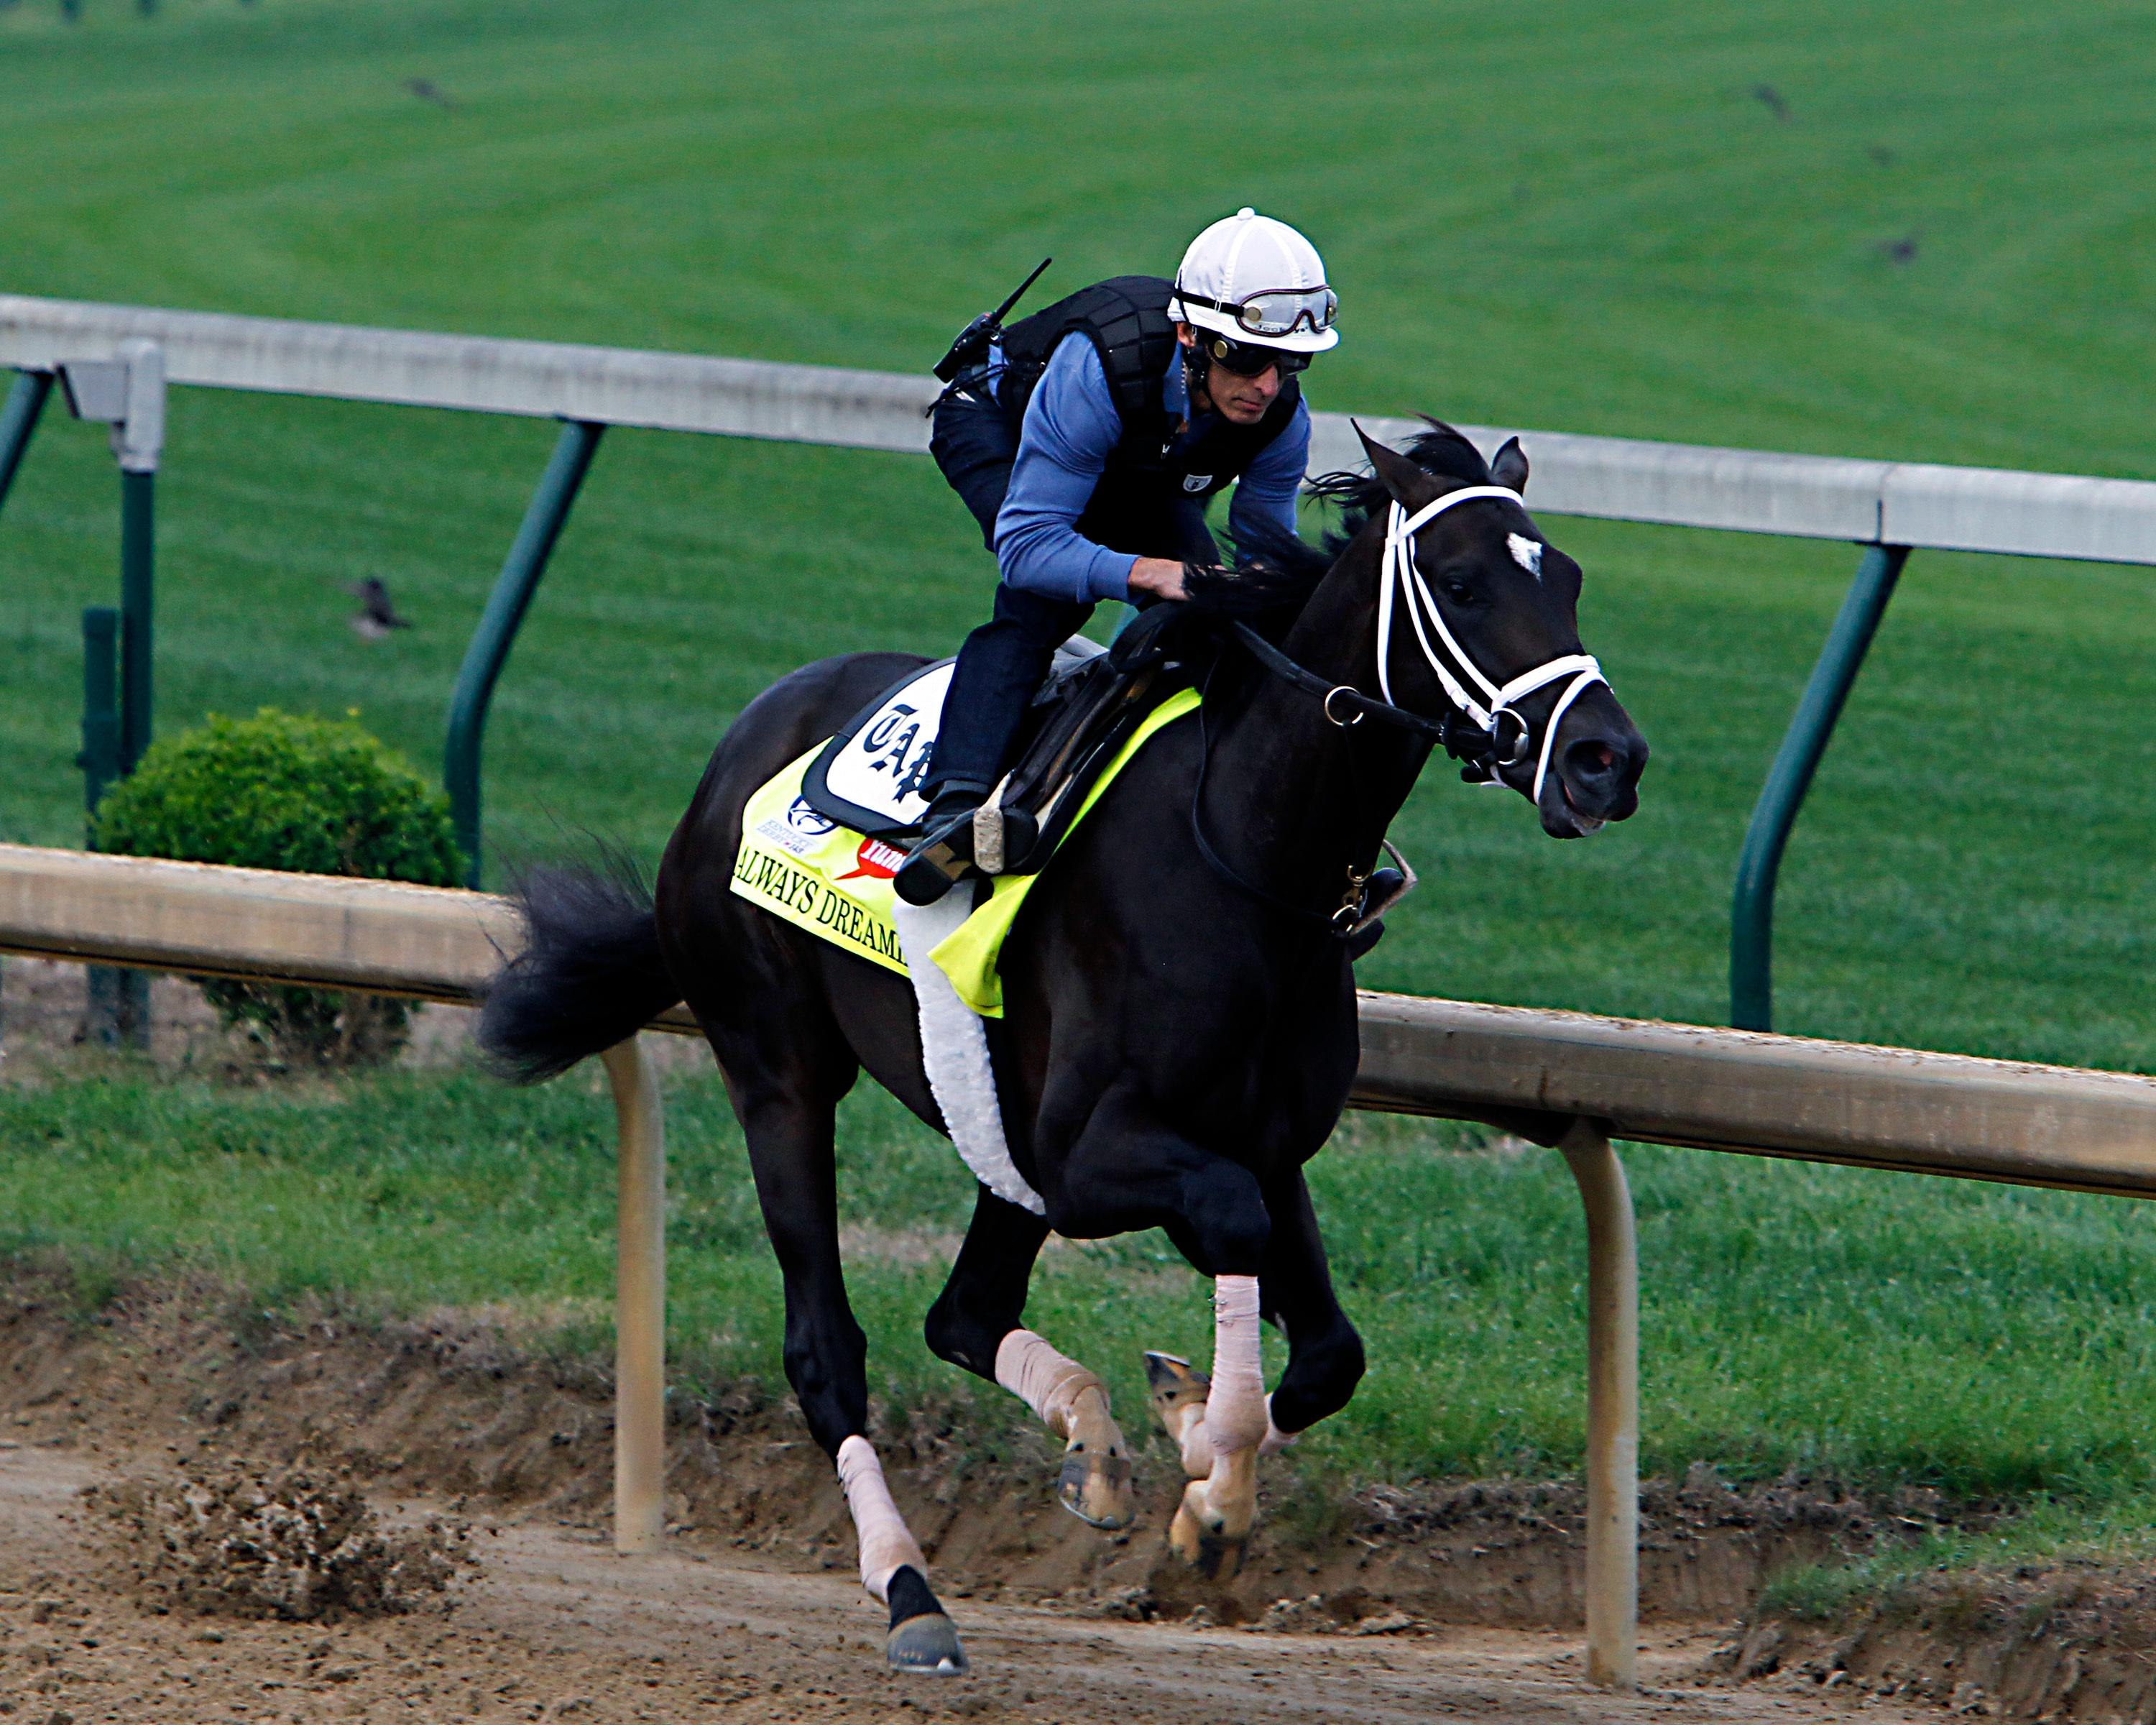 Kentucky Derby hopeful Always Dreaming works out under jockey John Velazquez at Churchill Downs in Louisville, Ky., Friday, April 28, 2017. Always Dreaming is one of five colts eyeing the May 6th horse race from the barn of trainer Todd Pletcher. (AP Photo/Garry Jones)